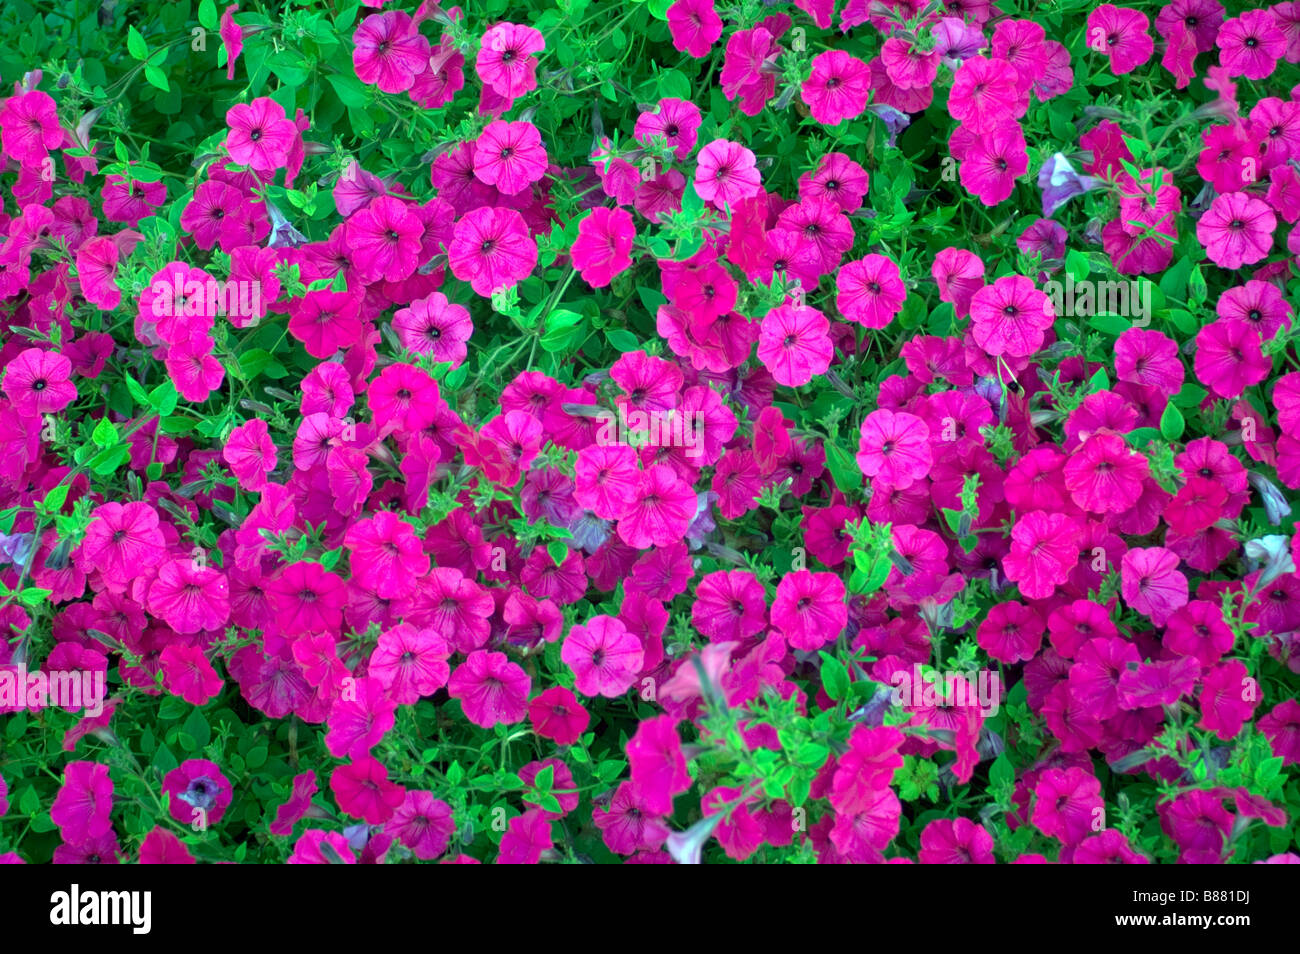 Ground cover pink flowers images flower decoration ideas purple pink colored flowers ground cover flora stock photo 22304398 purple pink colored flowers ground cover mightylinksfo Image collections